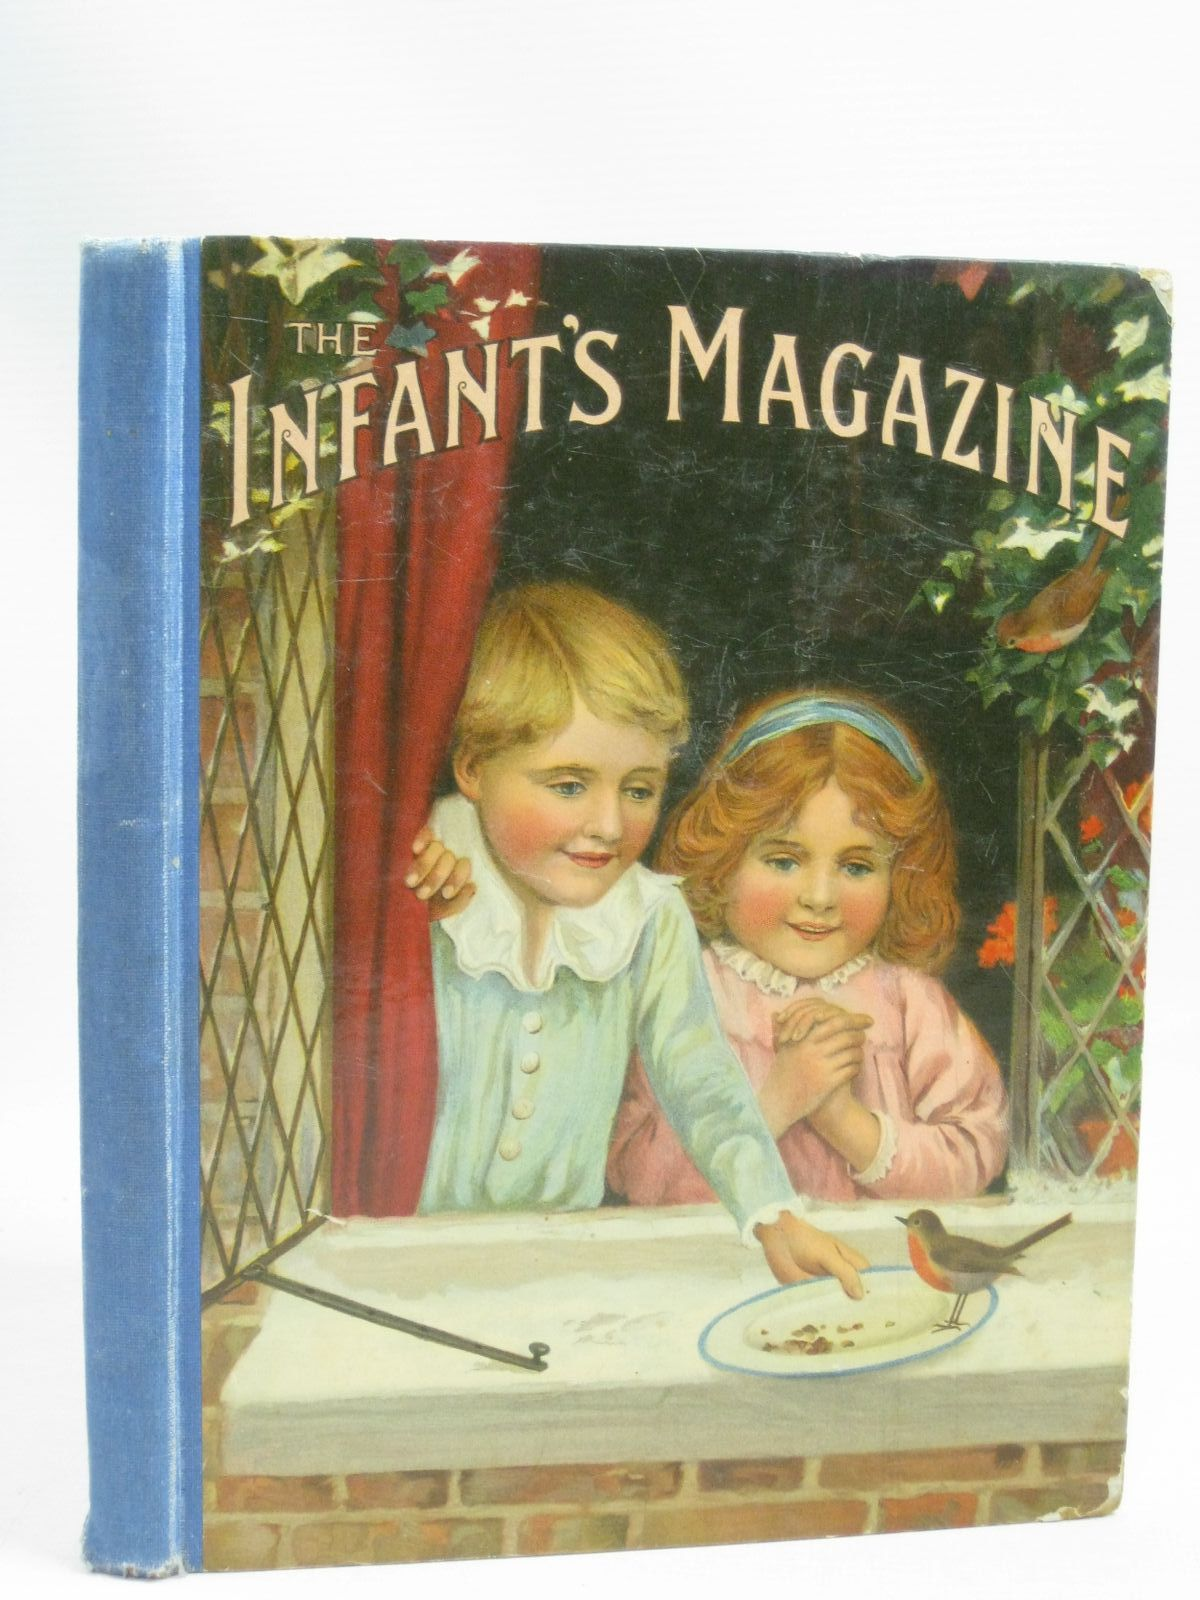 Photo of THE INFANTS' MAGAZINE FOR 1915 written by Lea, John<br />et al, illustrated by Bowley, A.L.<br />Wain, Louis<br />Lambert, H.G.C. Marsh<br />et al., published by S.W. Partridge & Co. Ltd. (STOCK CODE: 1405281)  for sale by Stella & Rose's Books